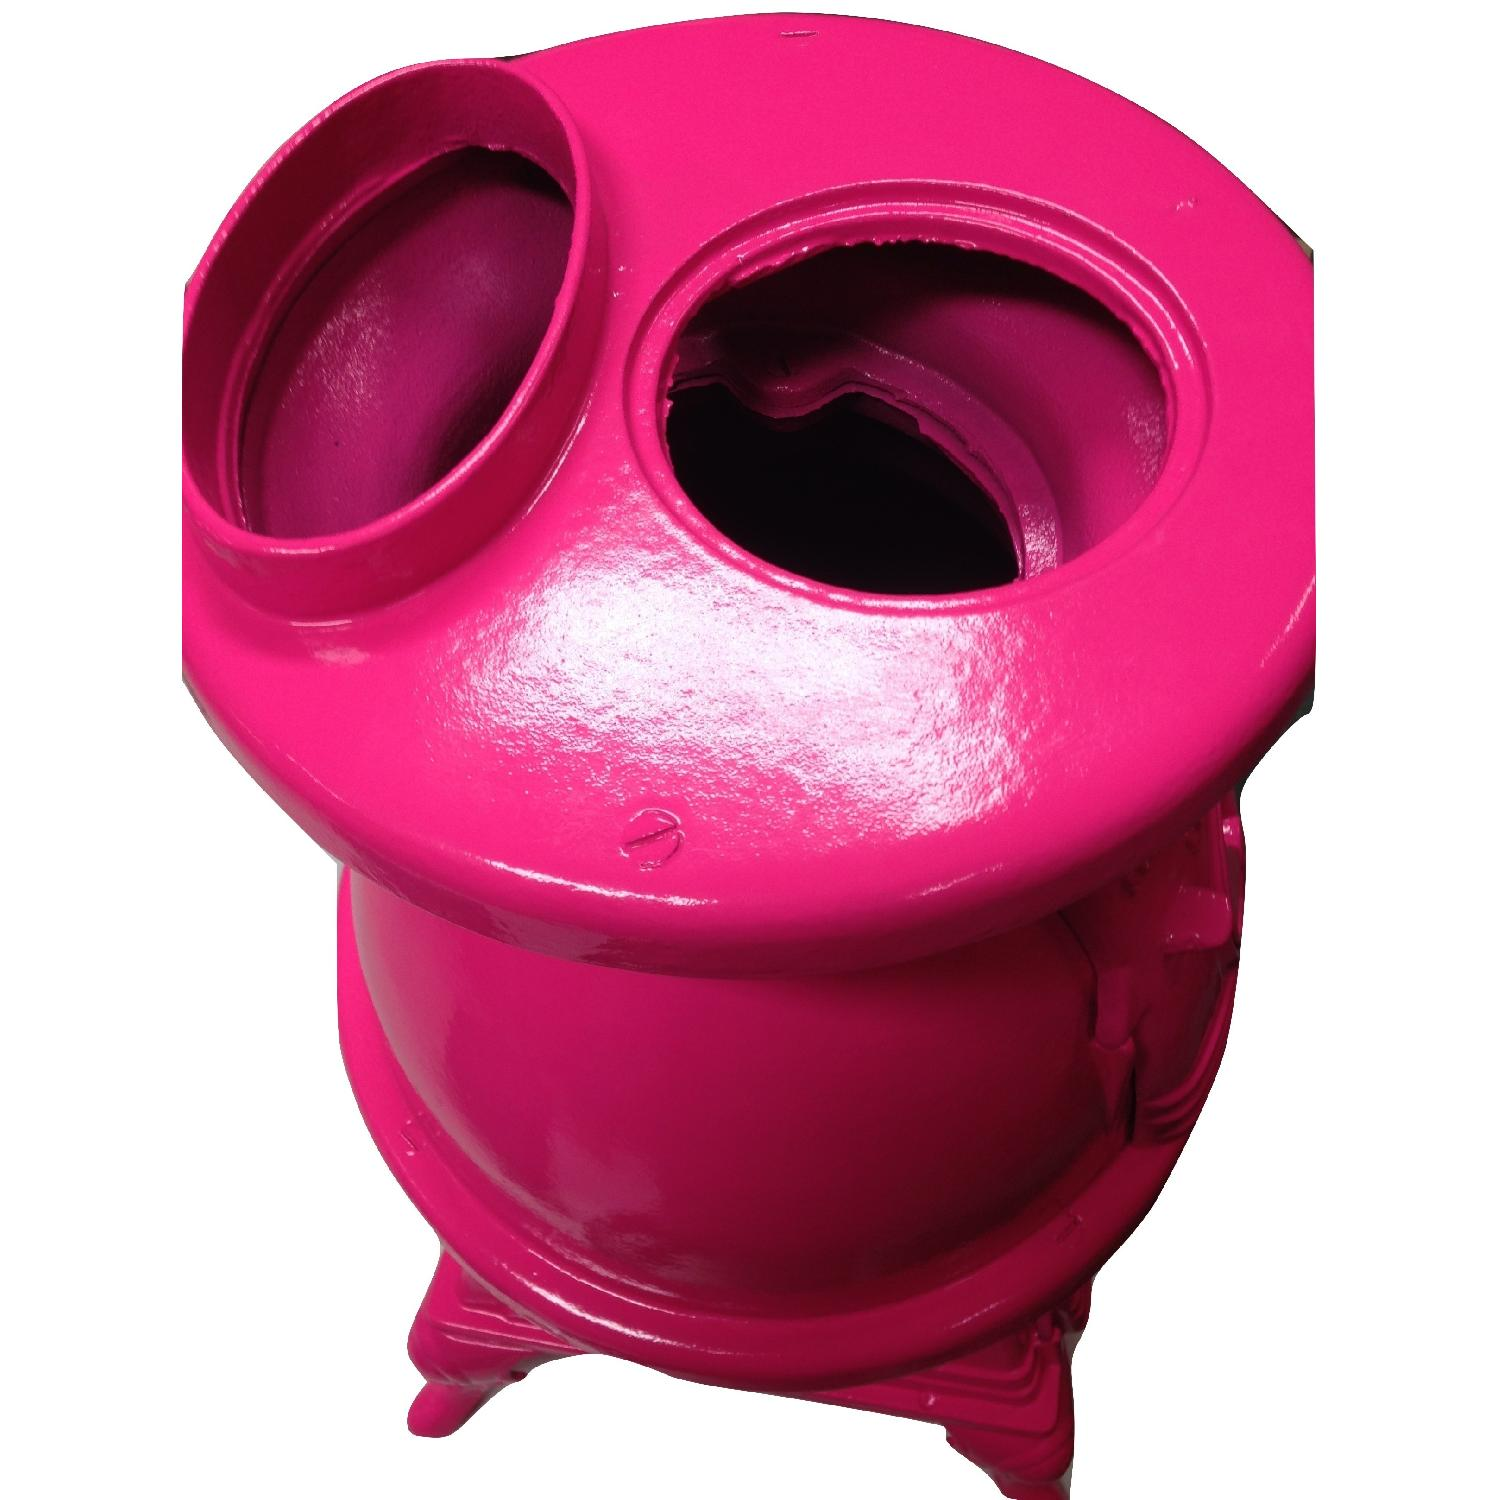 Hot Pink Pot Belly Stove-8